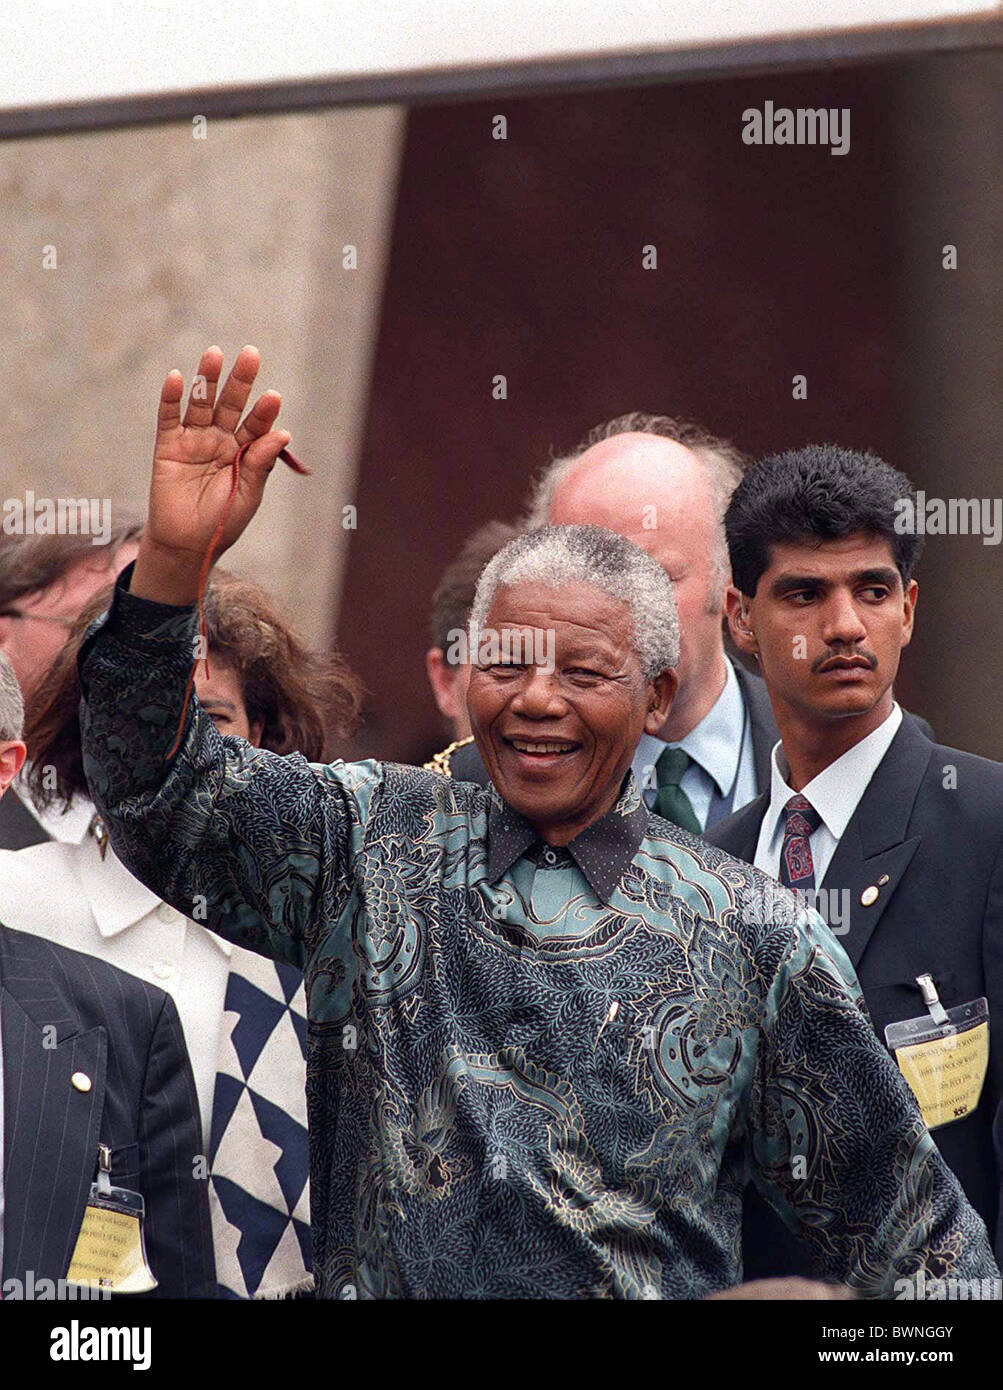 NELSON MANDELA WAVING TO THE CROWDS IN LONDON AT THE END OF HIS VISIT TO BRITAIN - Stock Image